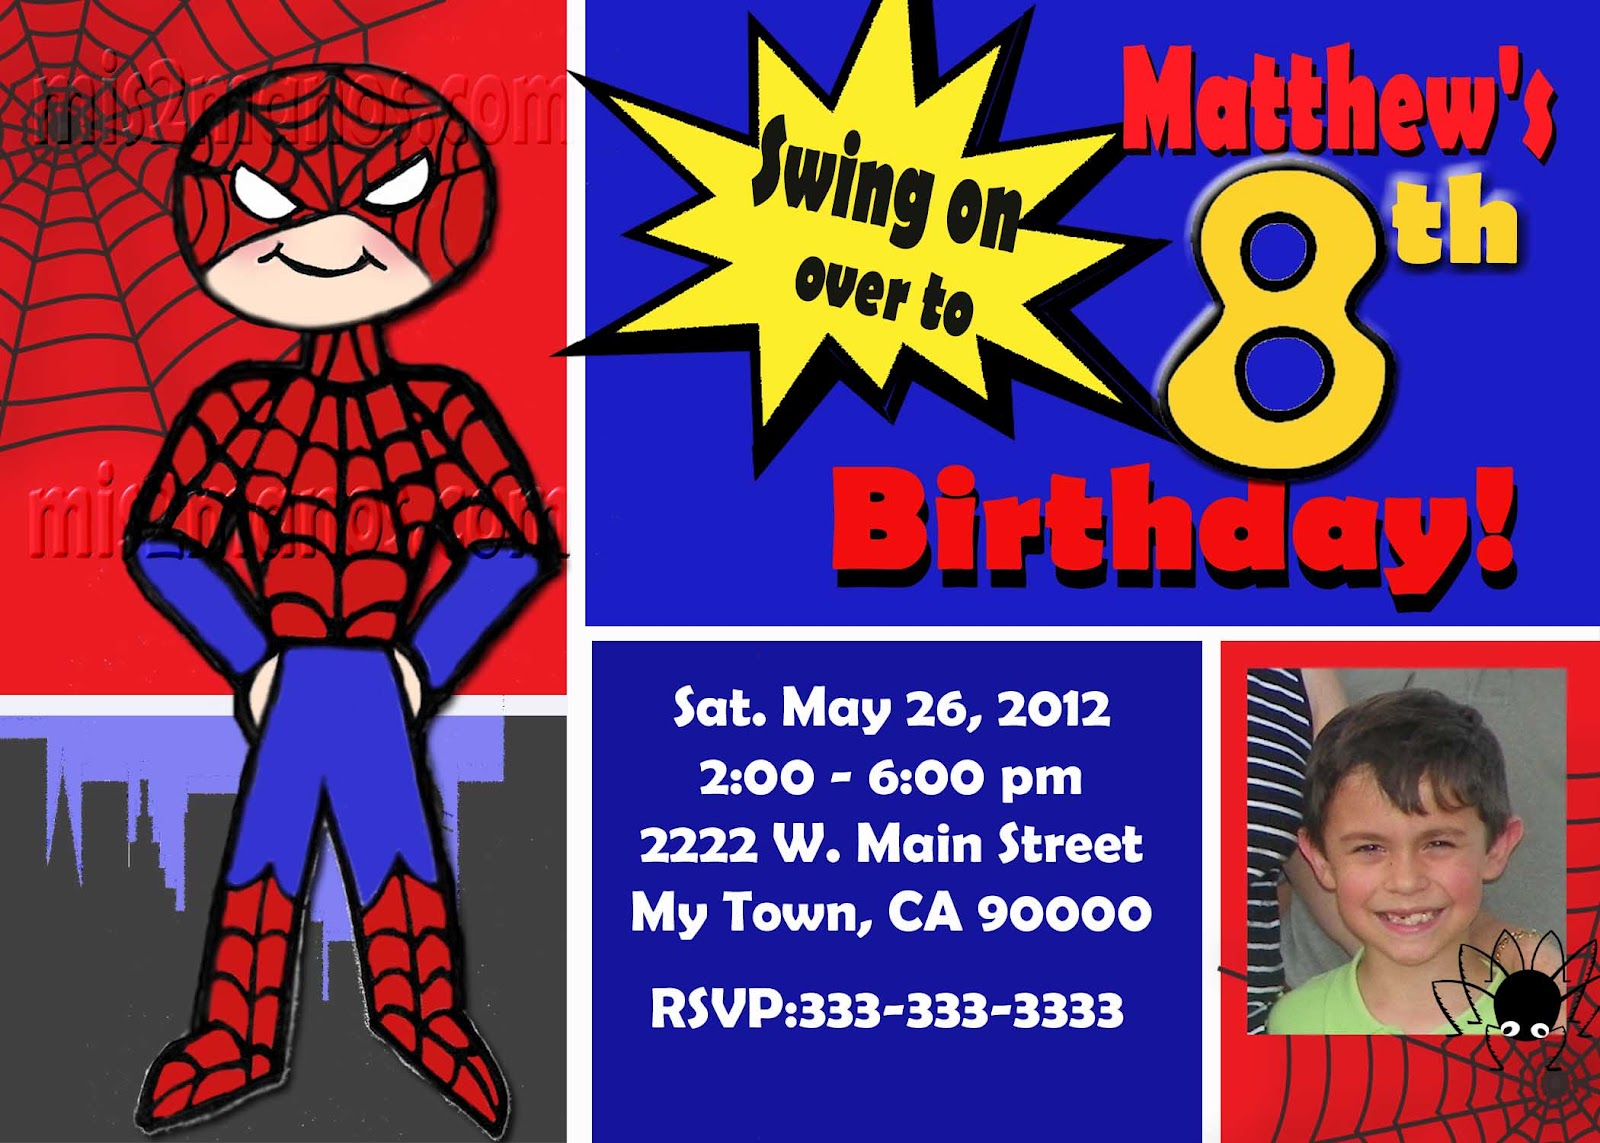 www.etsy.com/listing/100003584/spidey-spider-man-birthday-invitation